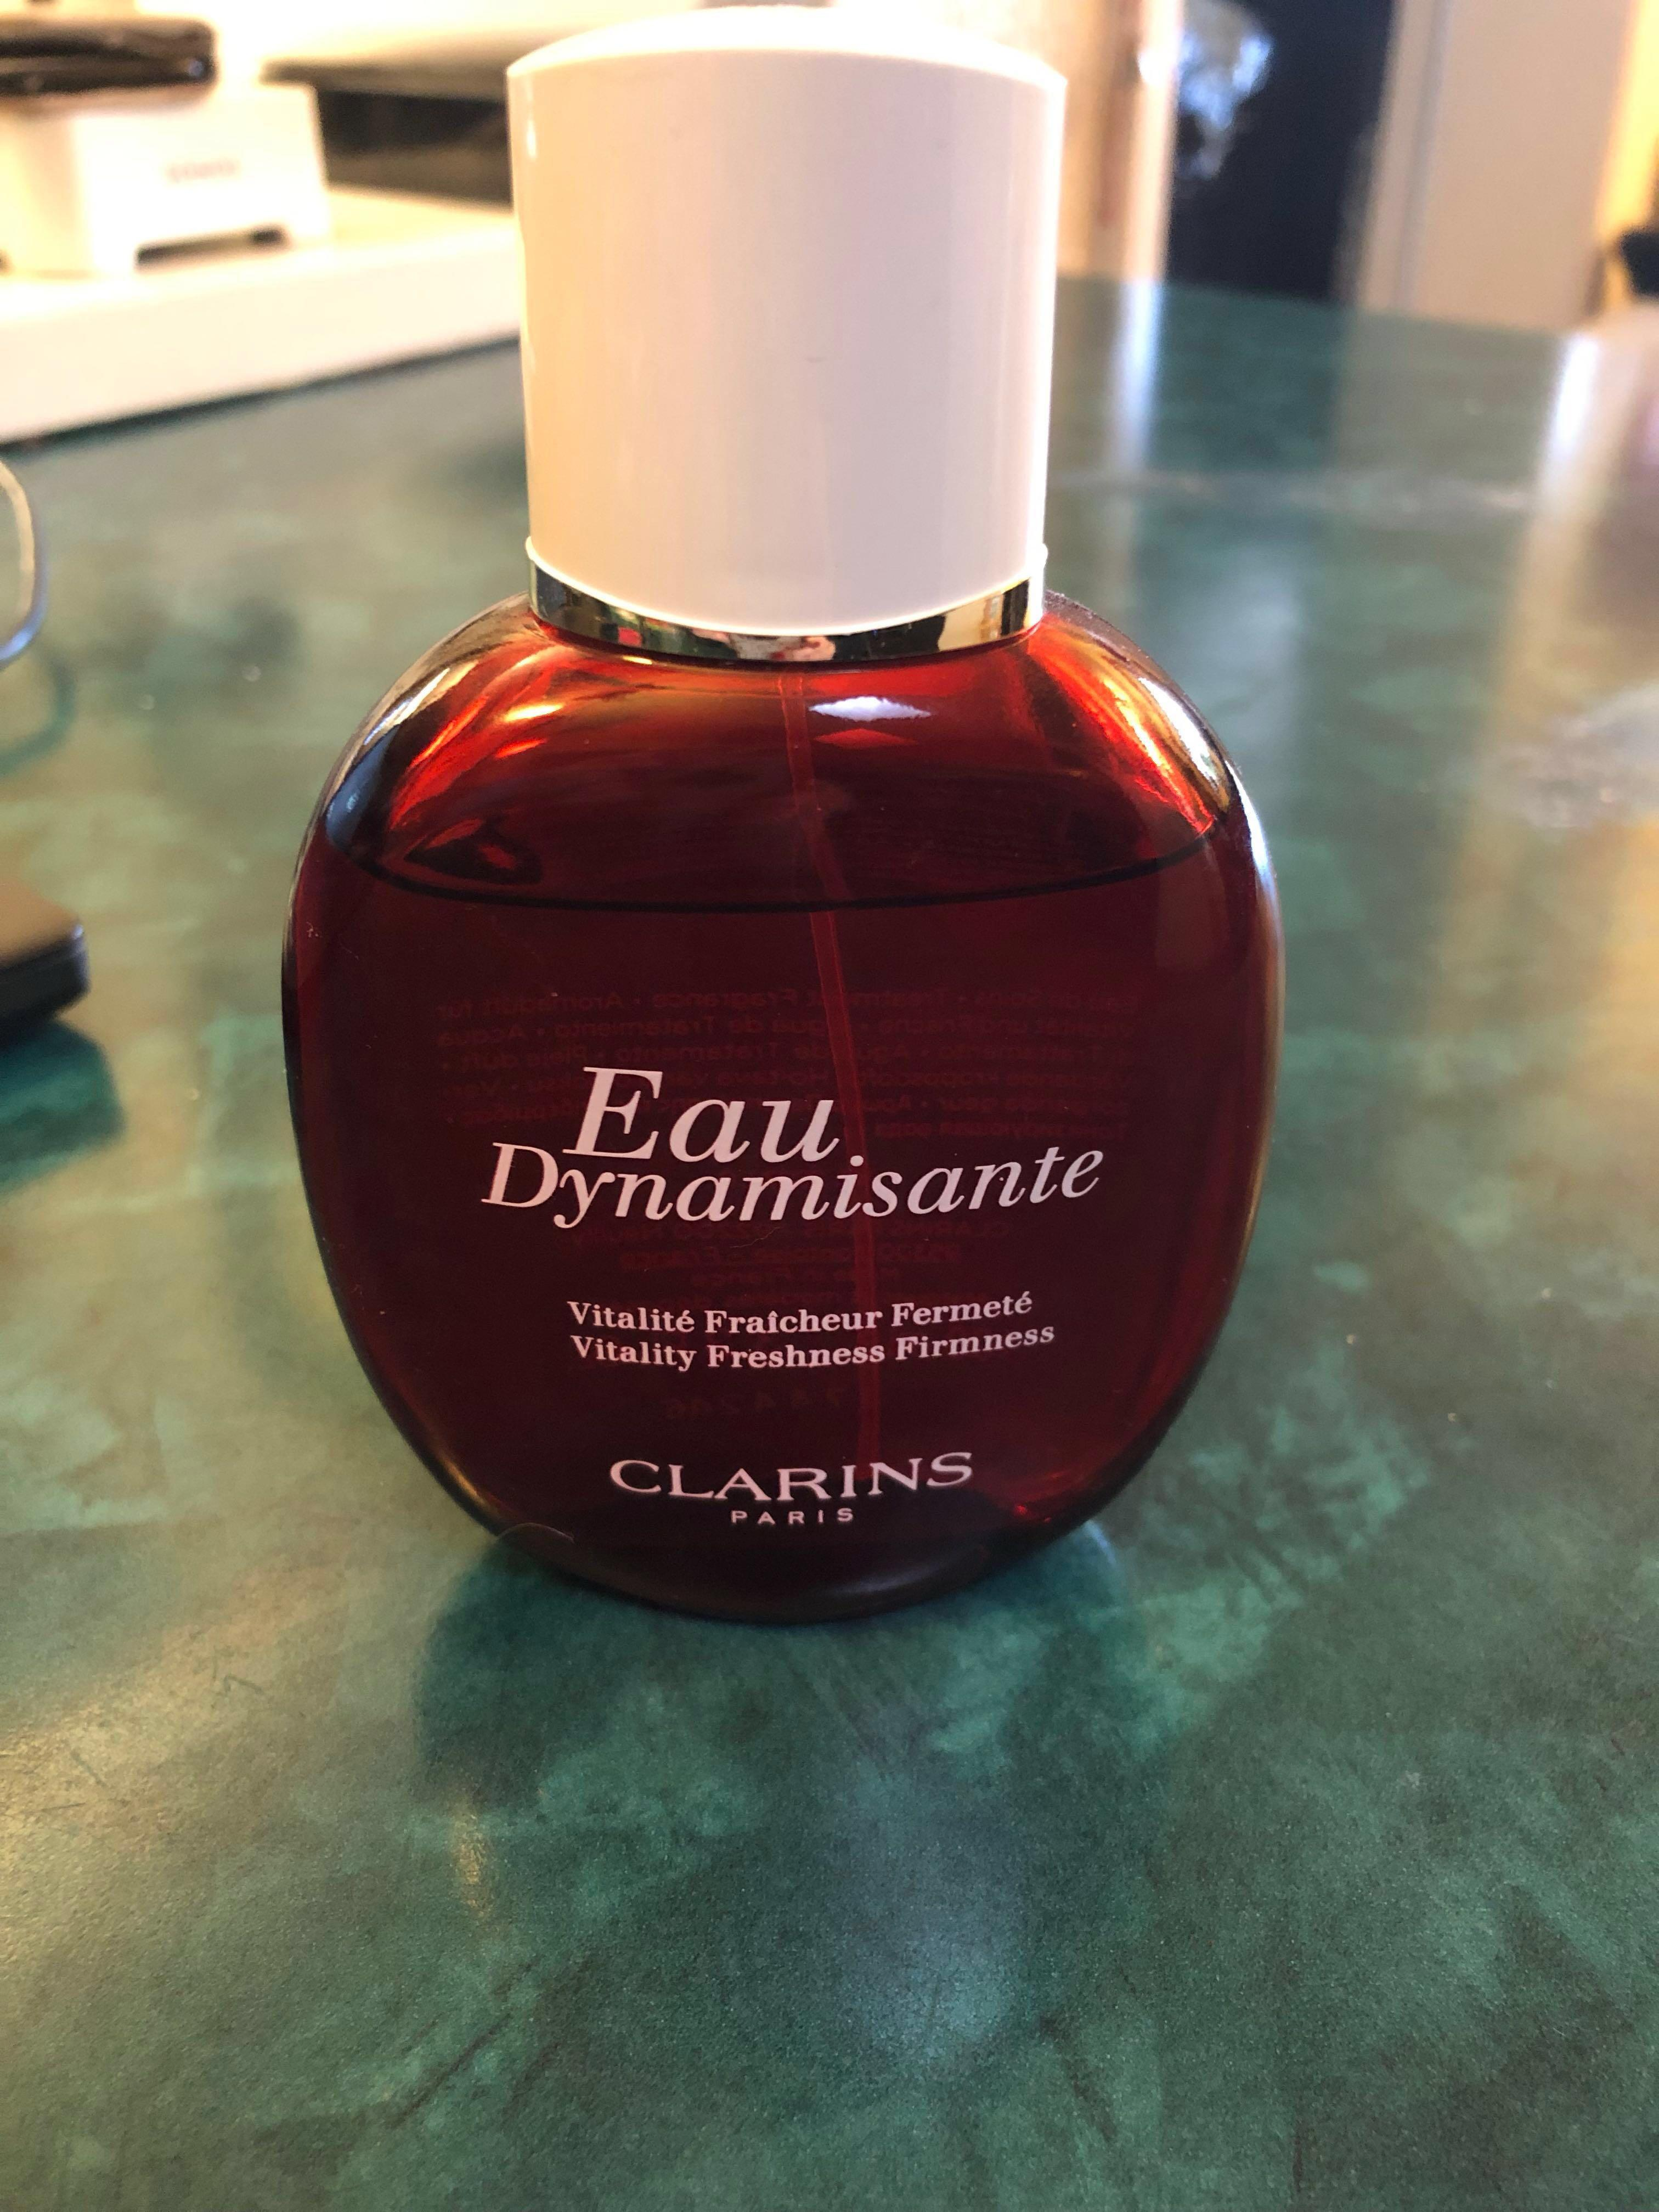 Clarins Eau Dynamisante treatment fragrance 100ml bottle almost new